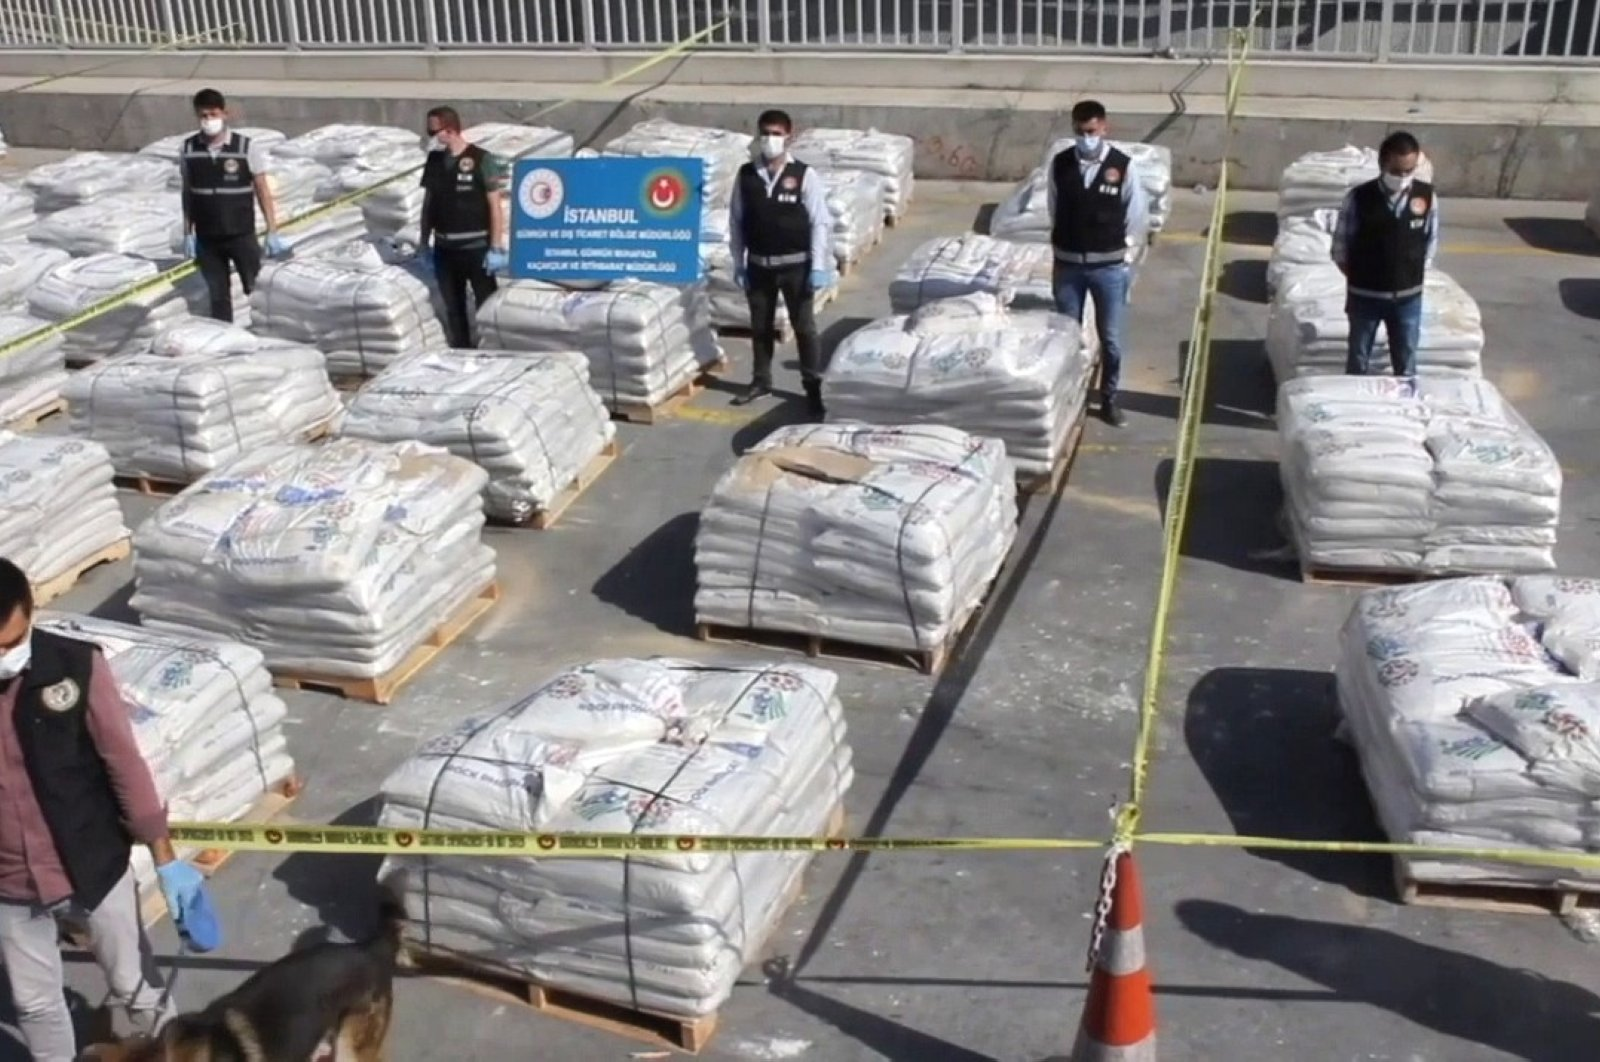 Police pose with sacks of fertilizers containing cocaine at the port, in Istanbul, Turkey, Oct. 6, 2020. (İHA Photo)